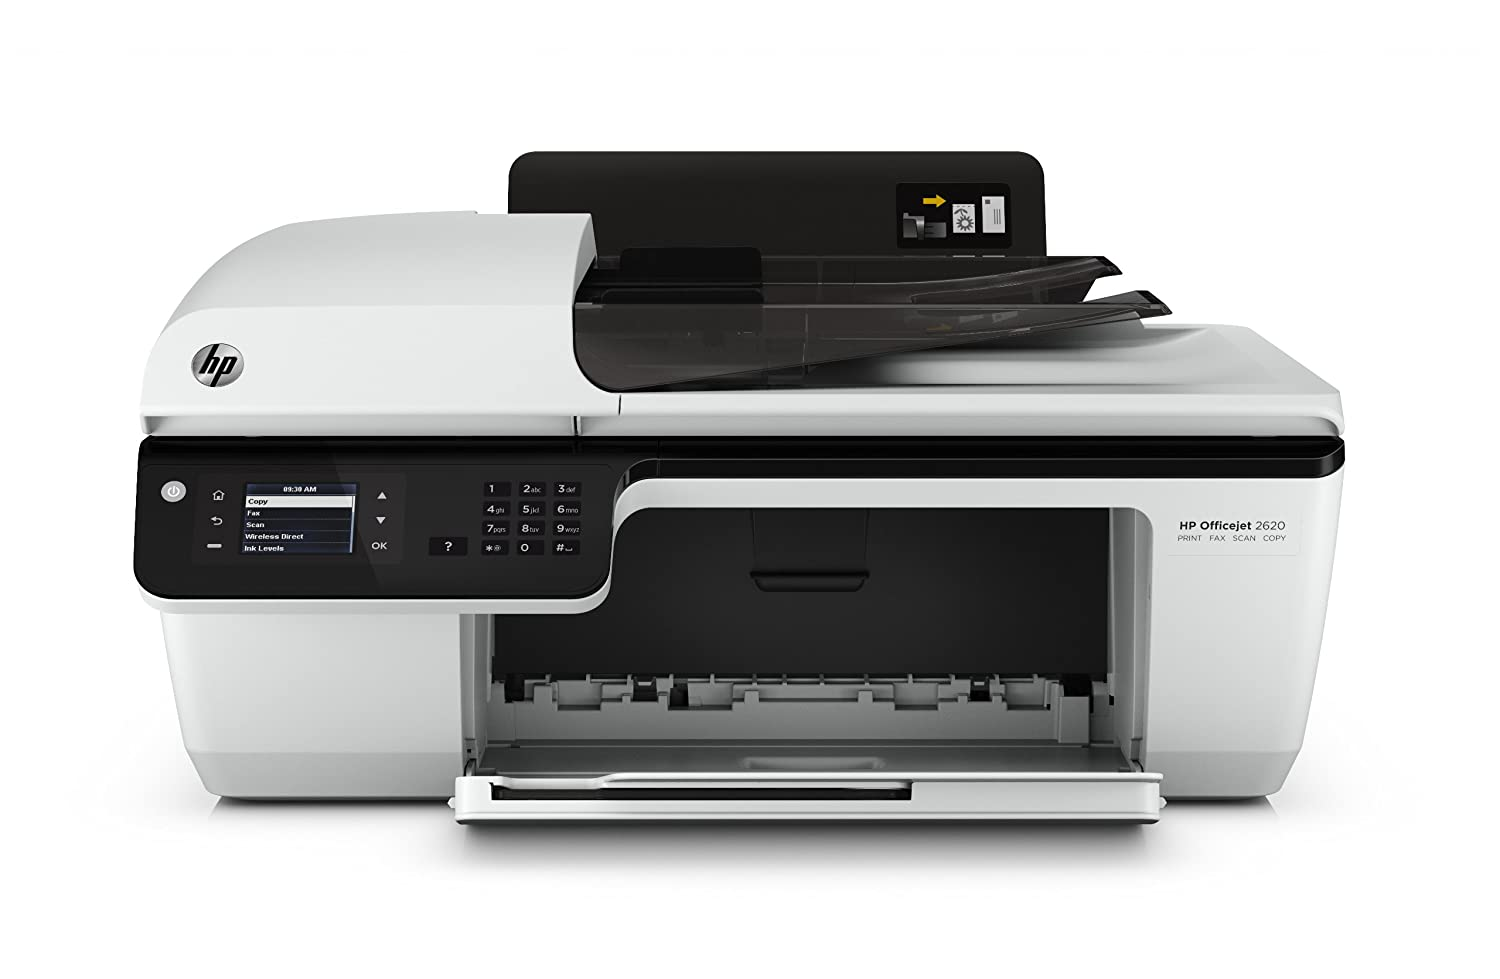 HP Officejet 2620 All-in-One Multifunktionsgerät